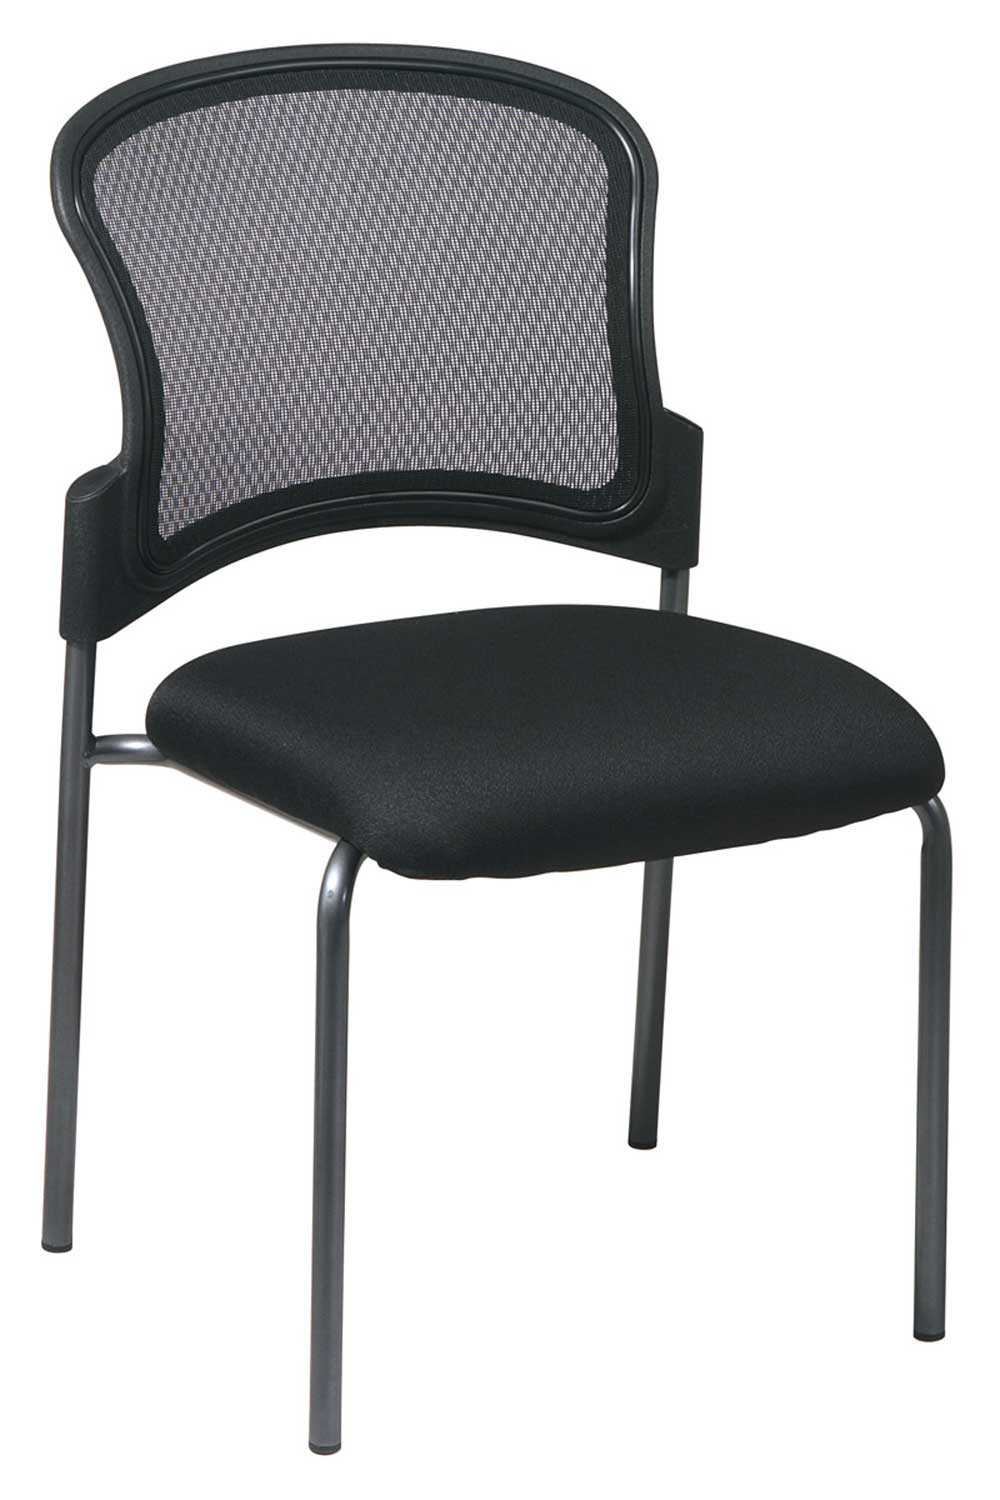 Black Stacking Office Reception Chair